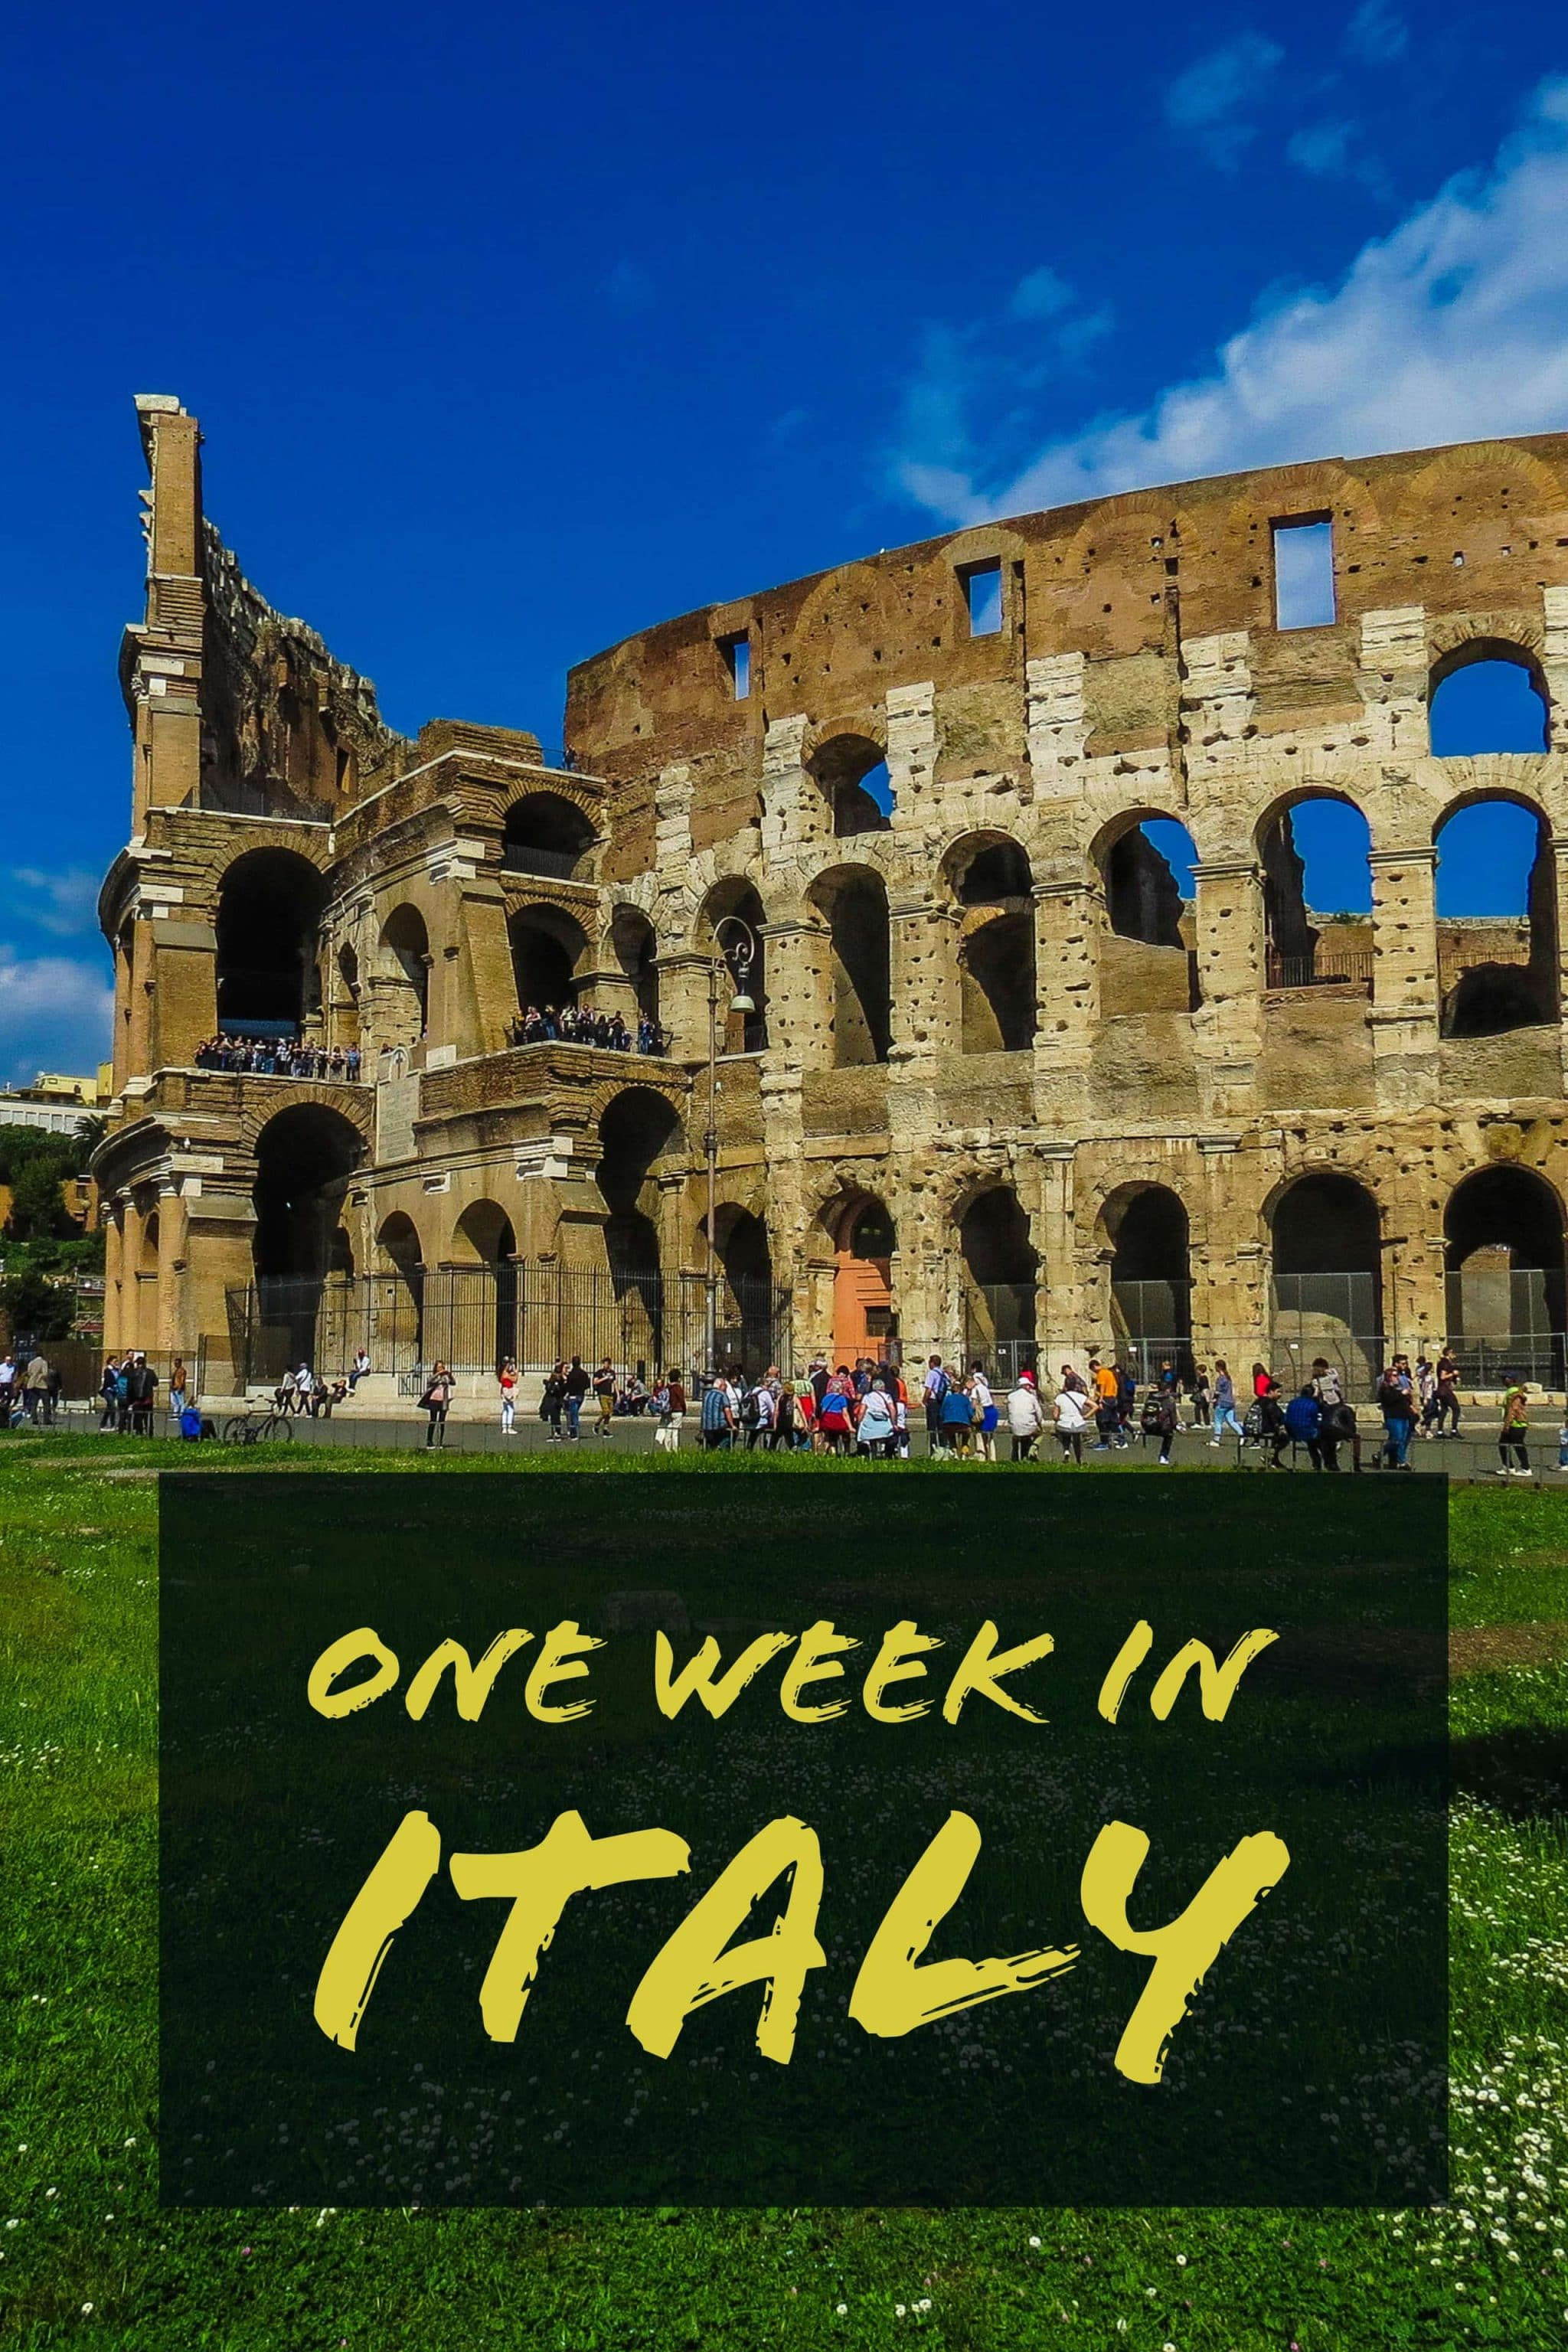 A one week Italy itinerary including visits to Venice, Florence and Rome. We also include suggestions for alternate cities based on your interests and time.